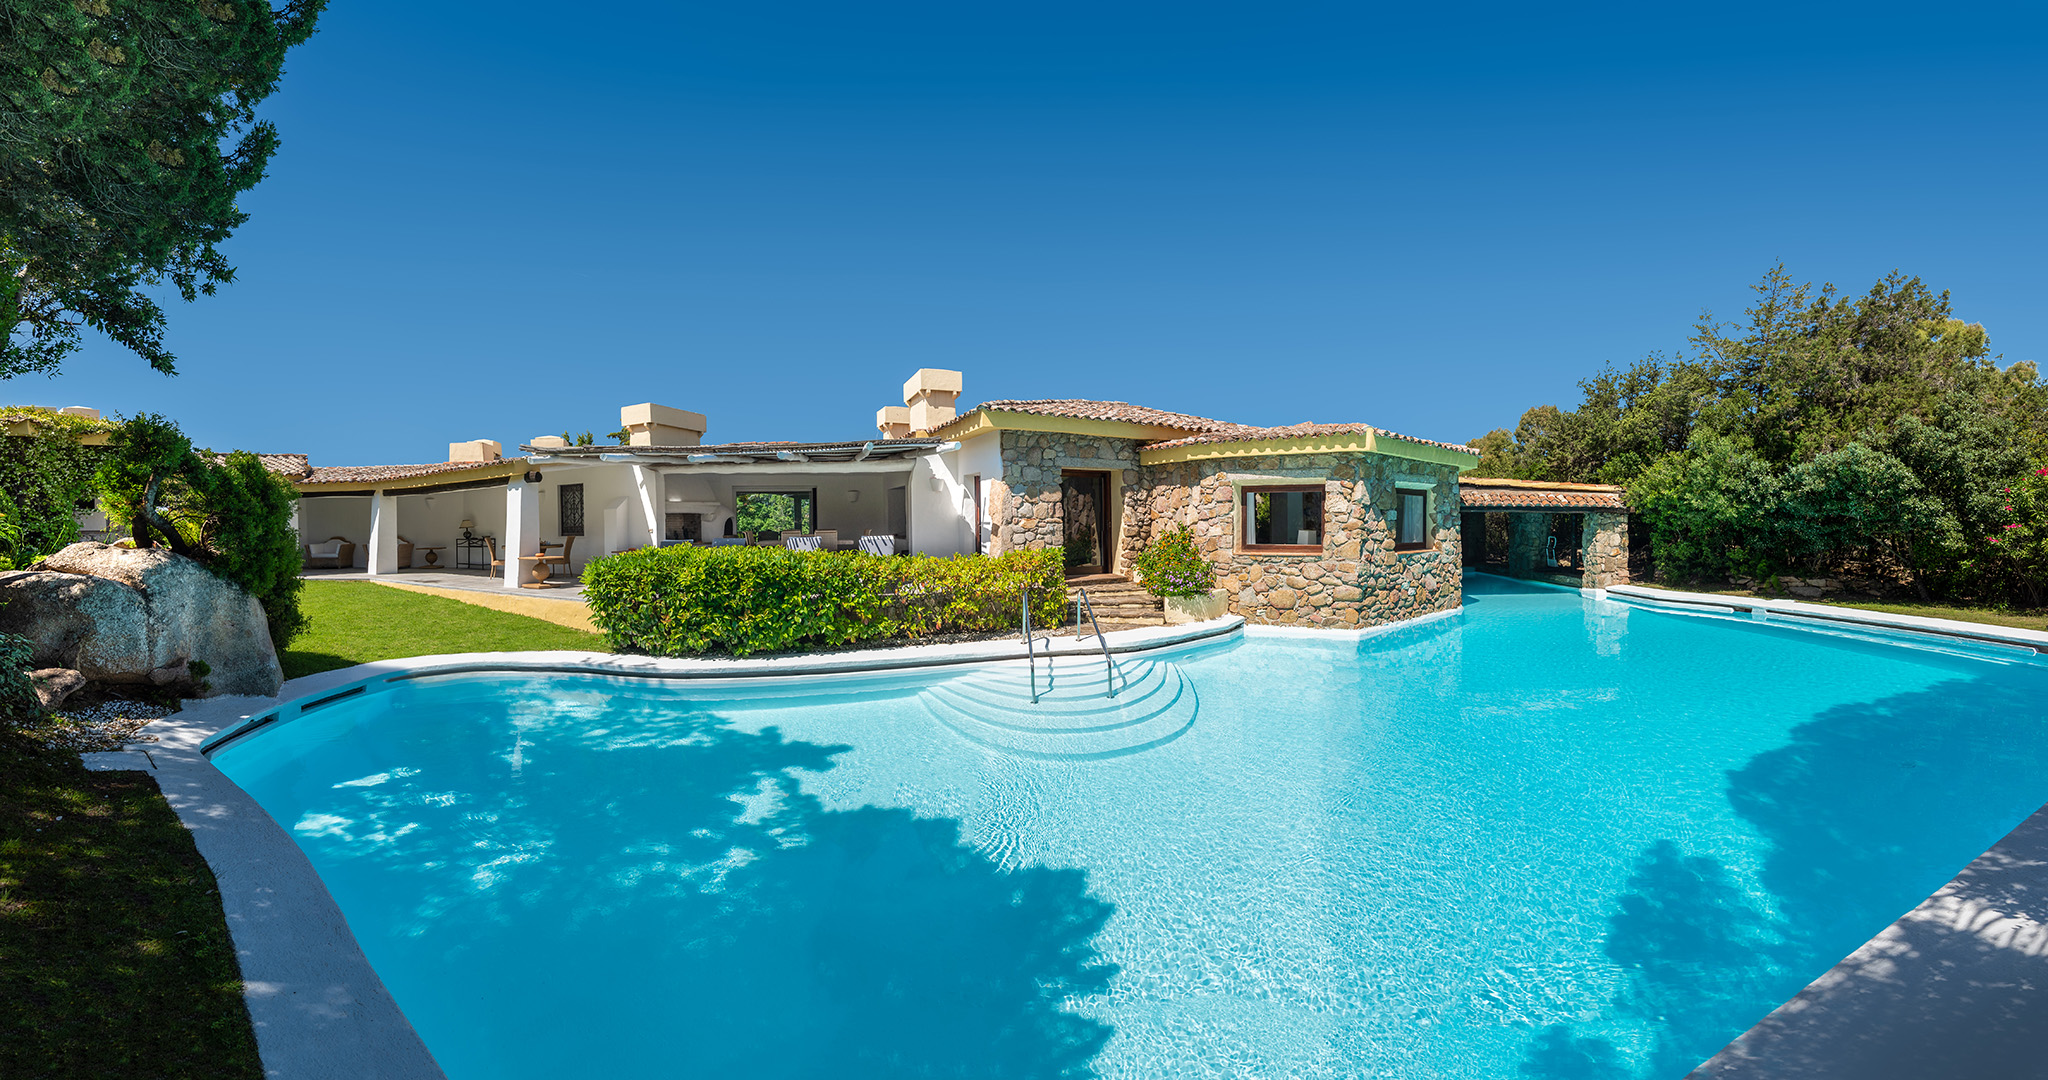 Exclusive villa<br>with private beach